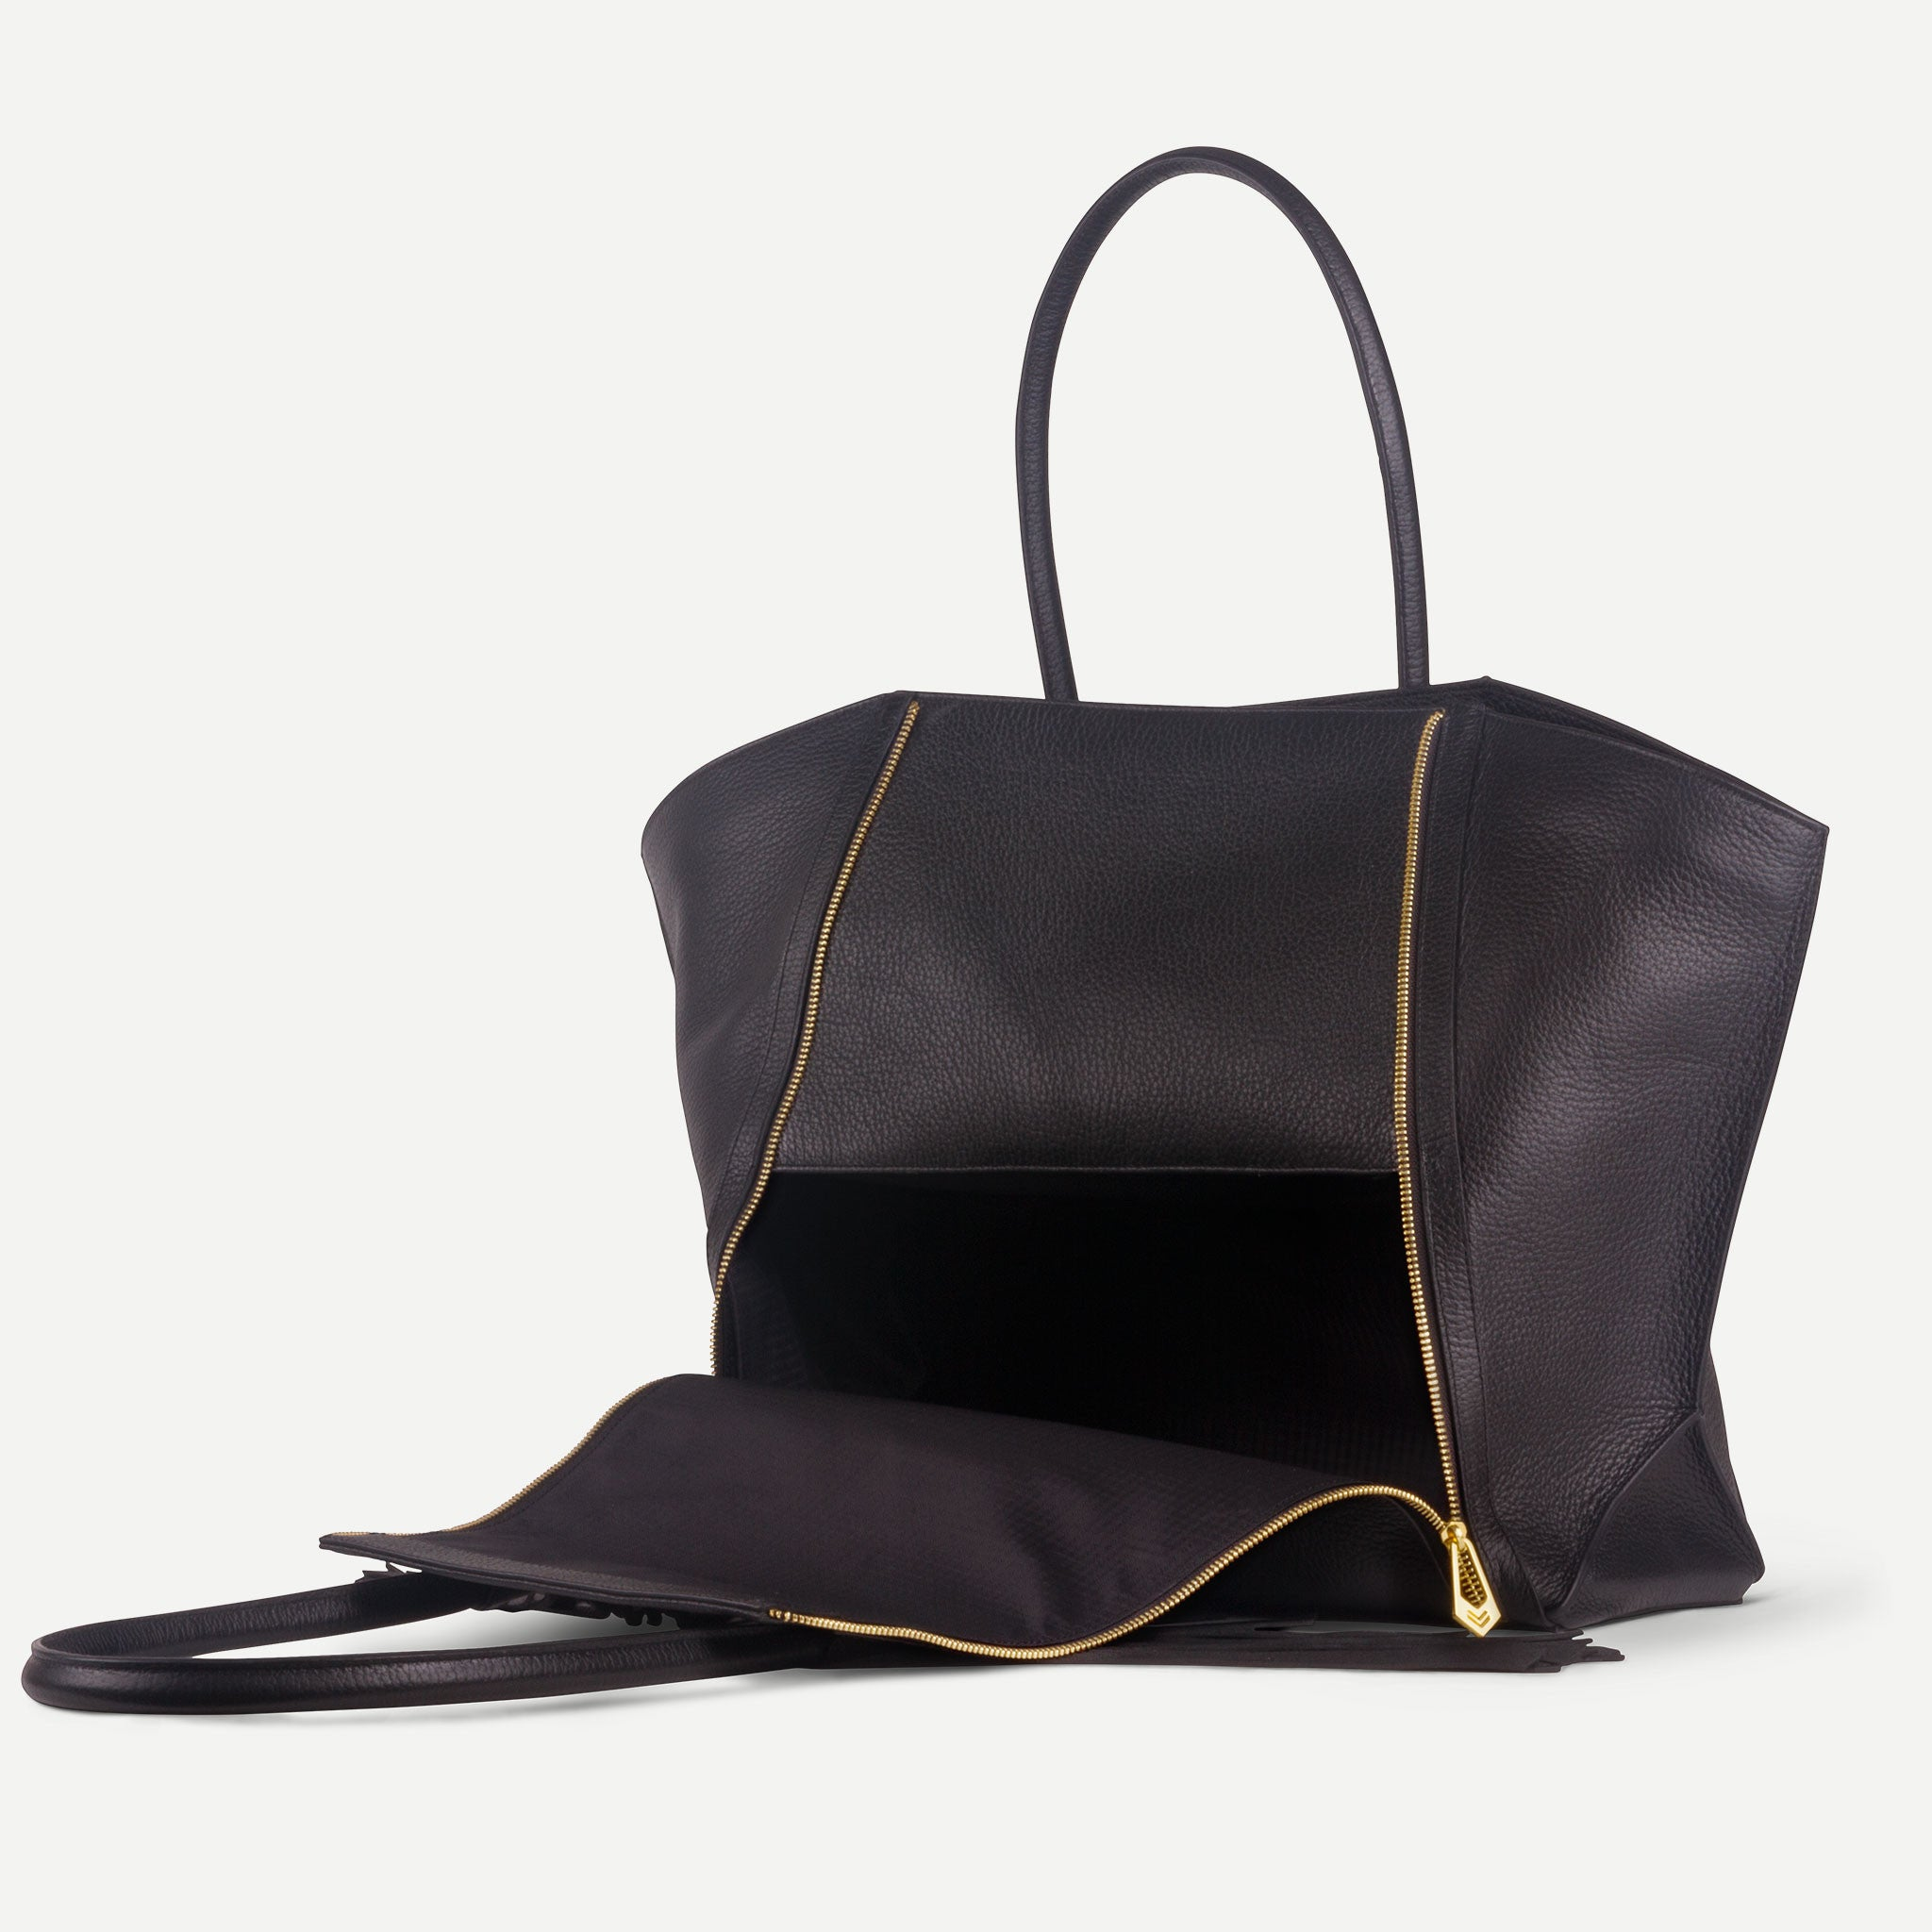 Clea Bag - Black